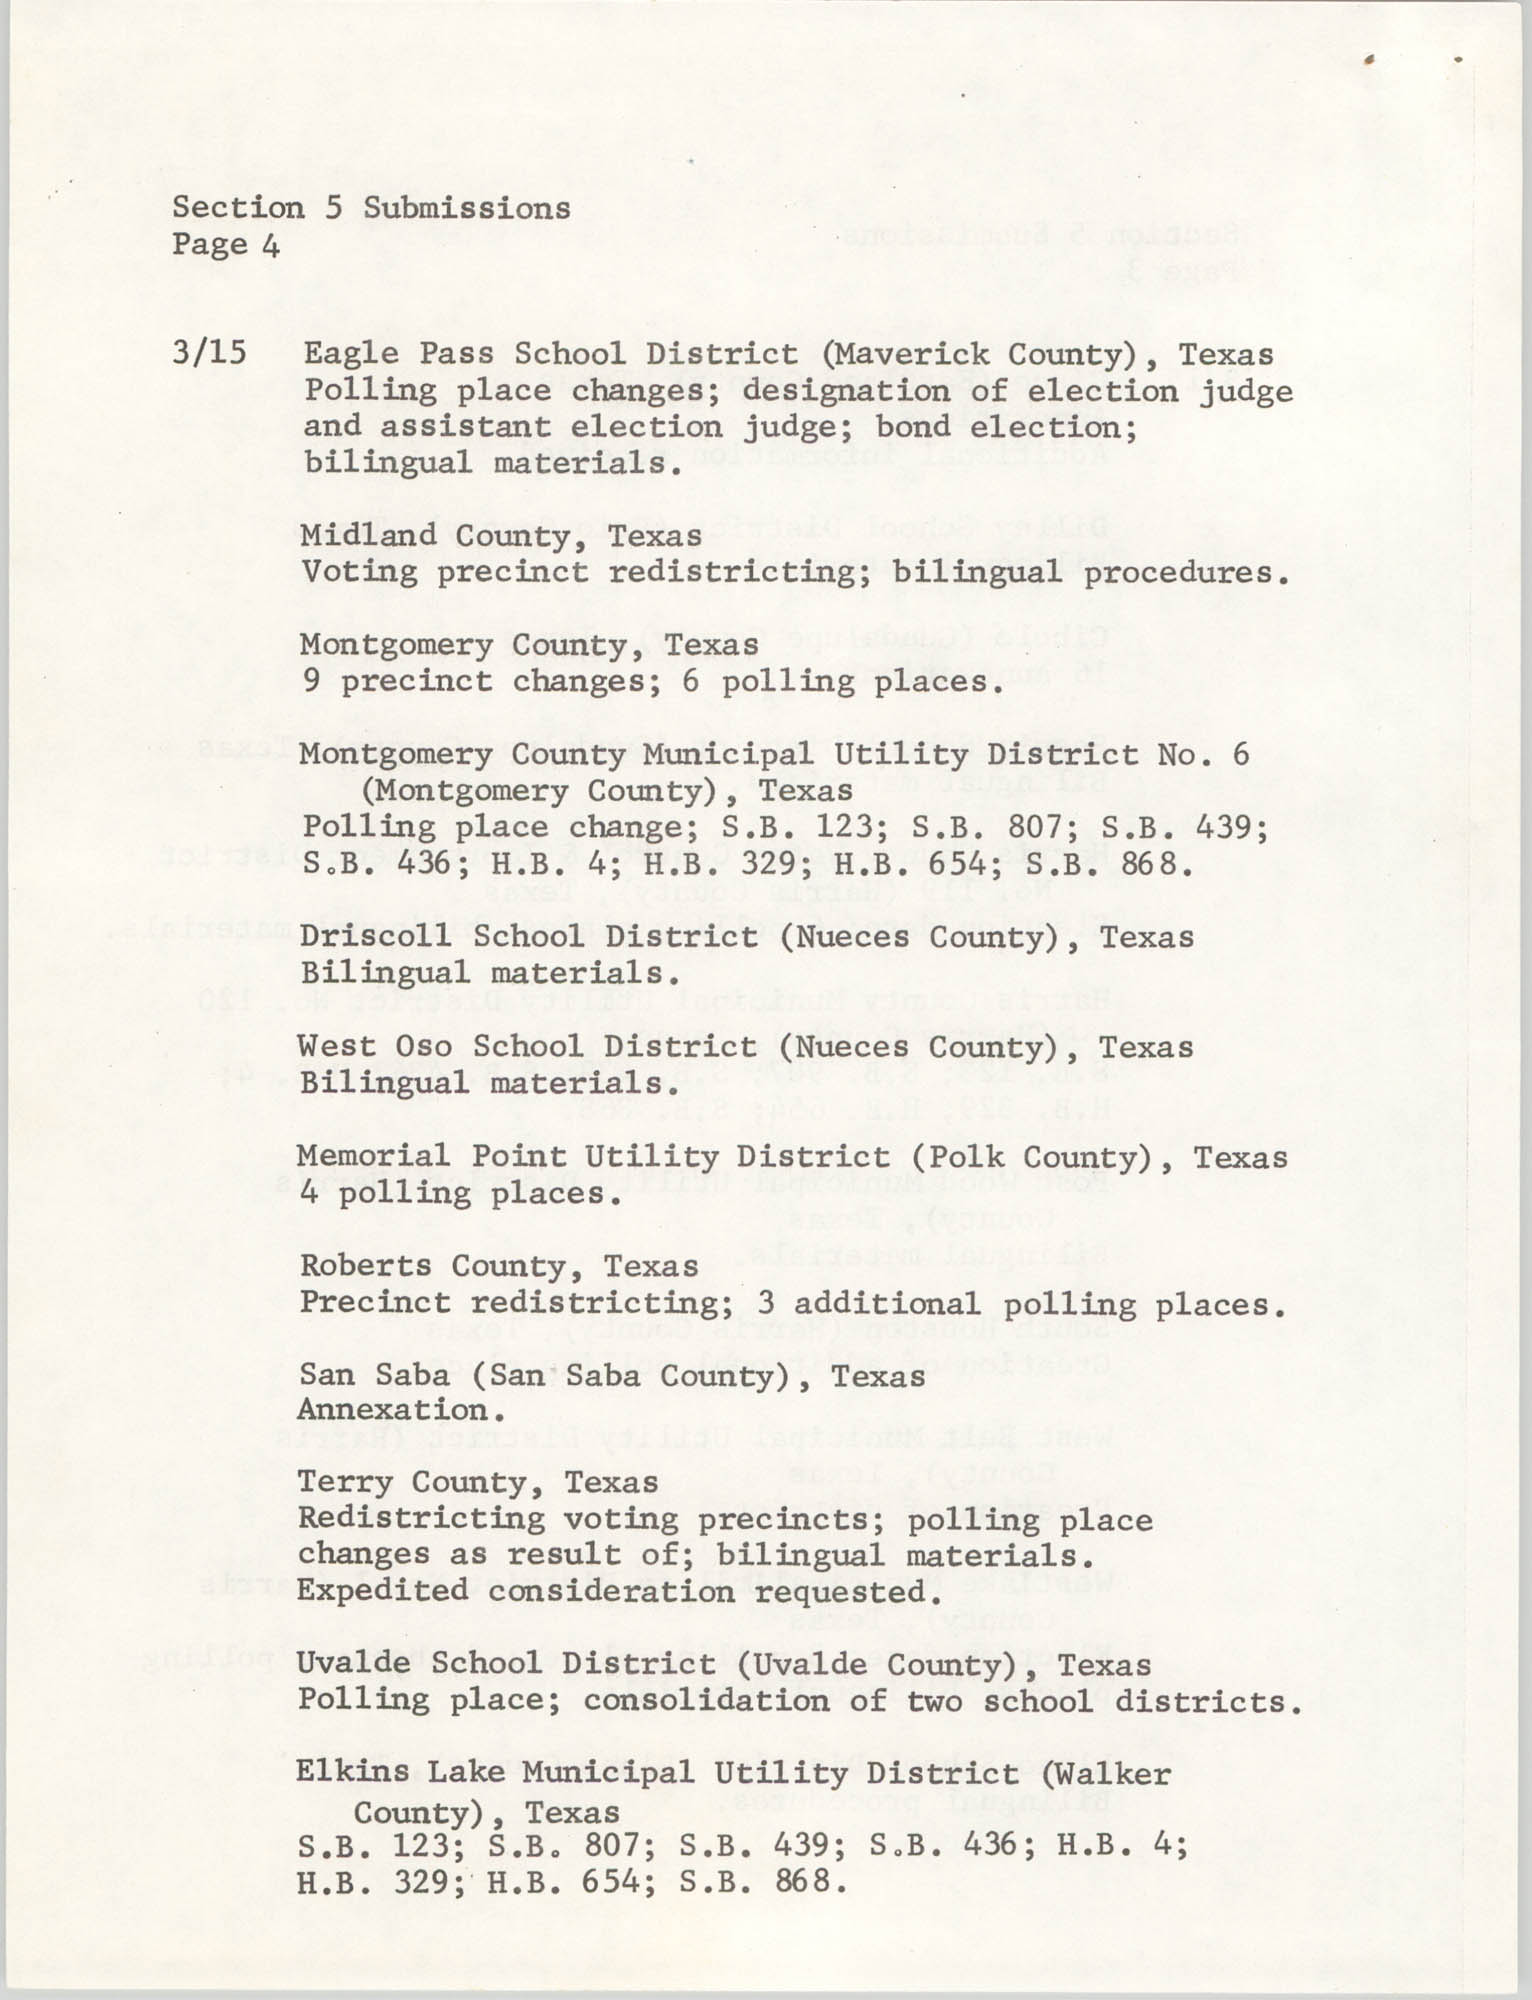 United States Department of Justice Notice, March 26, 1976, Page 4